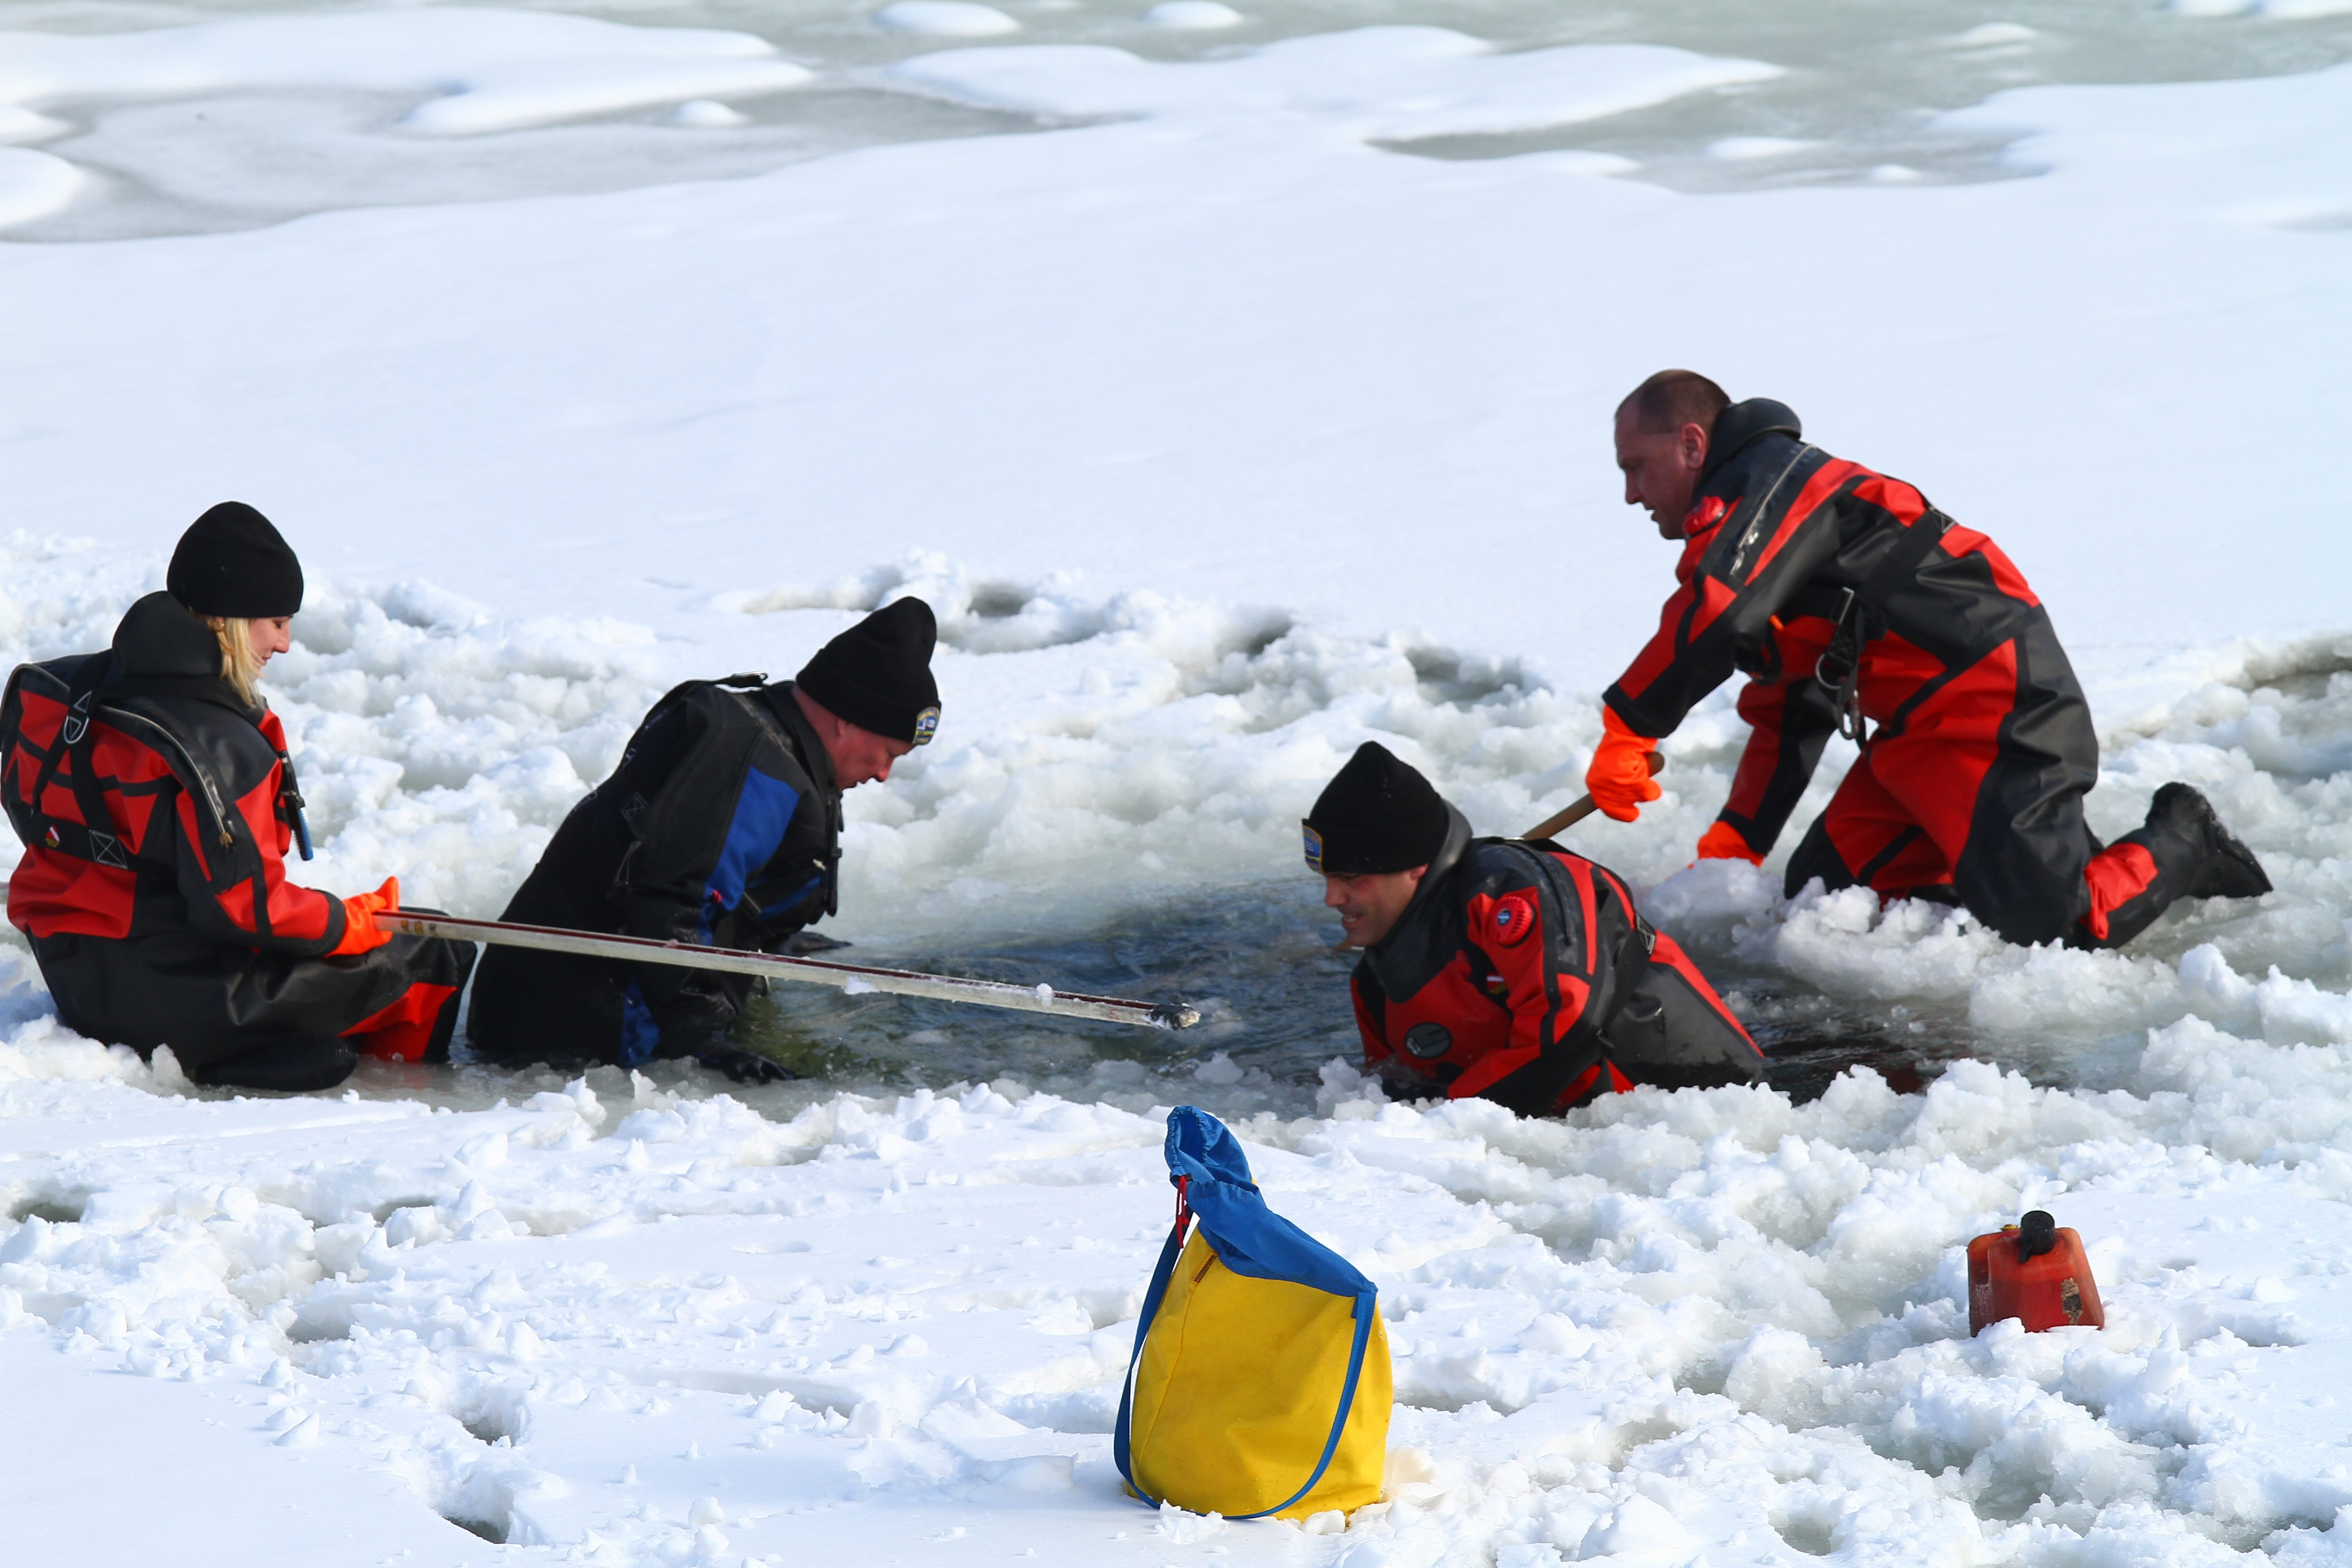 The Buffalo Police Underwater Recovery Team cuts holes in the ice to control potential ice jams and prevent flooding.